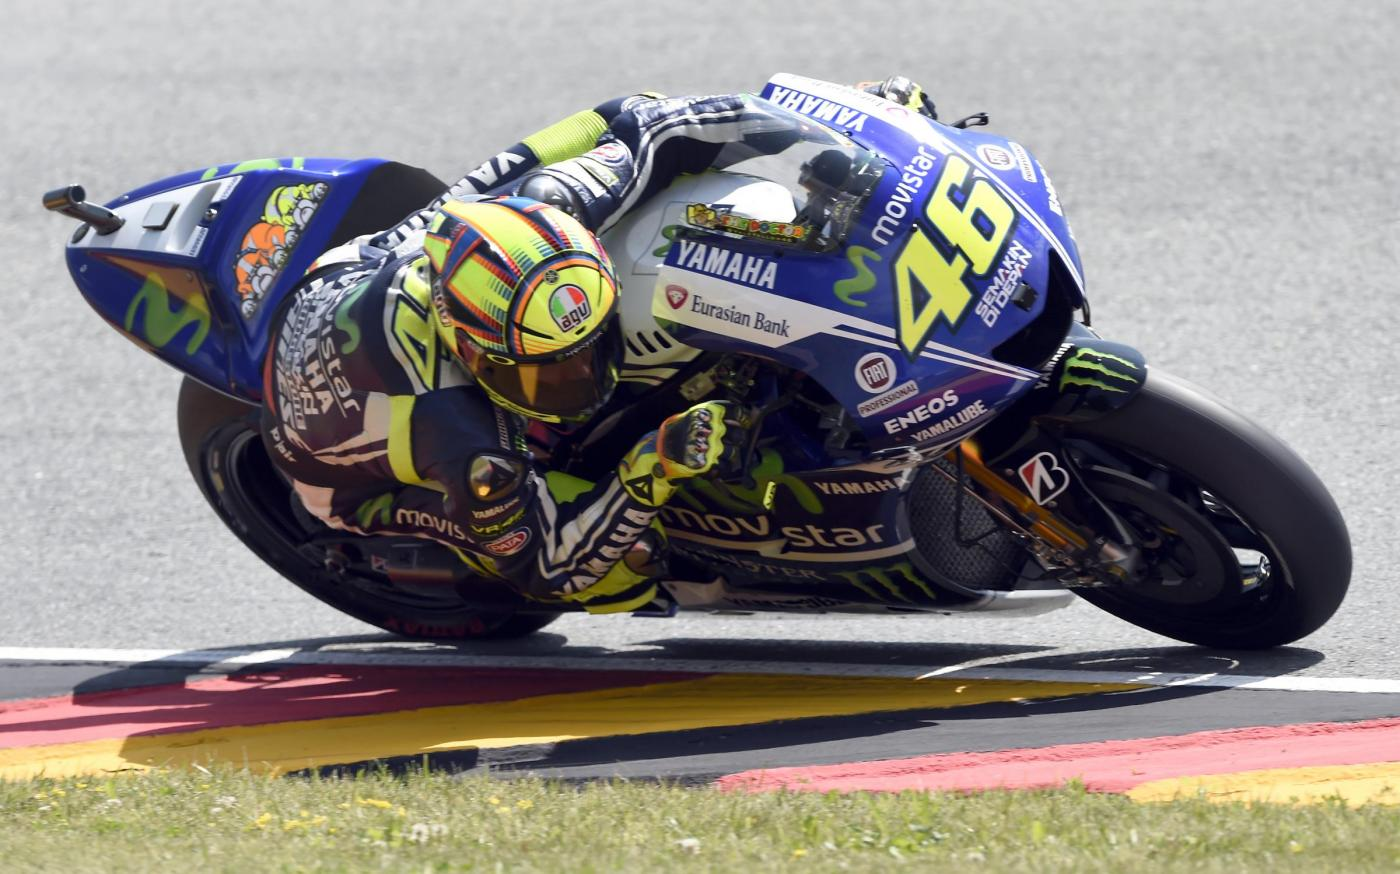 Valentino Rossi (AP Photo/Jens Meyer)